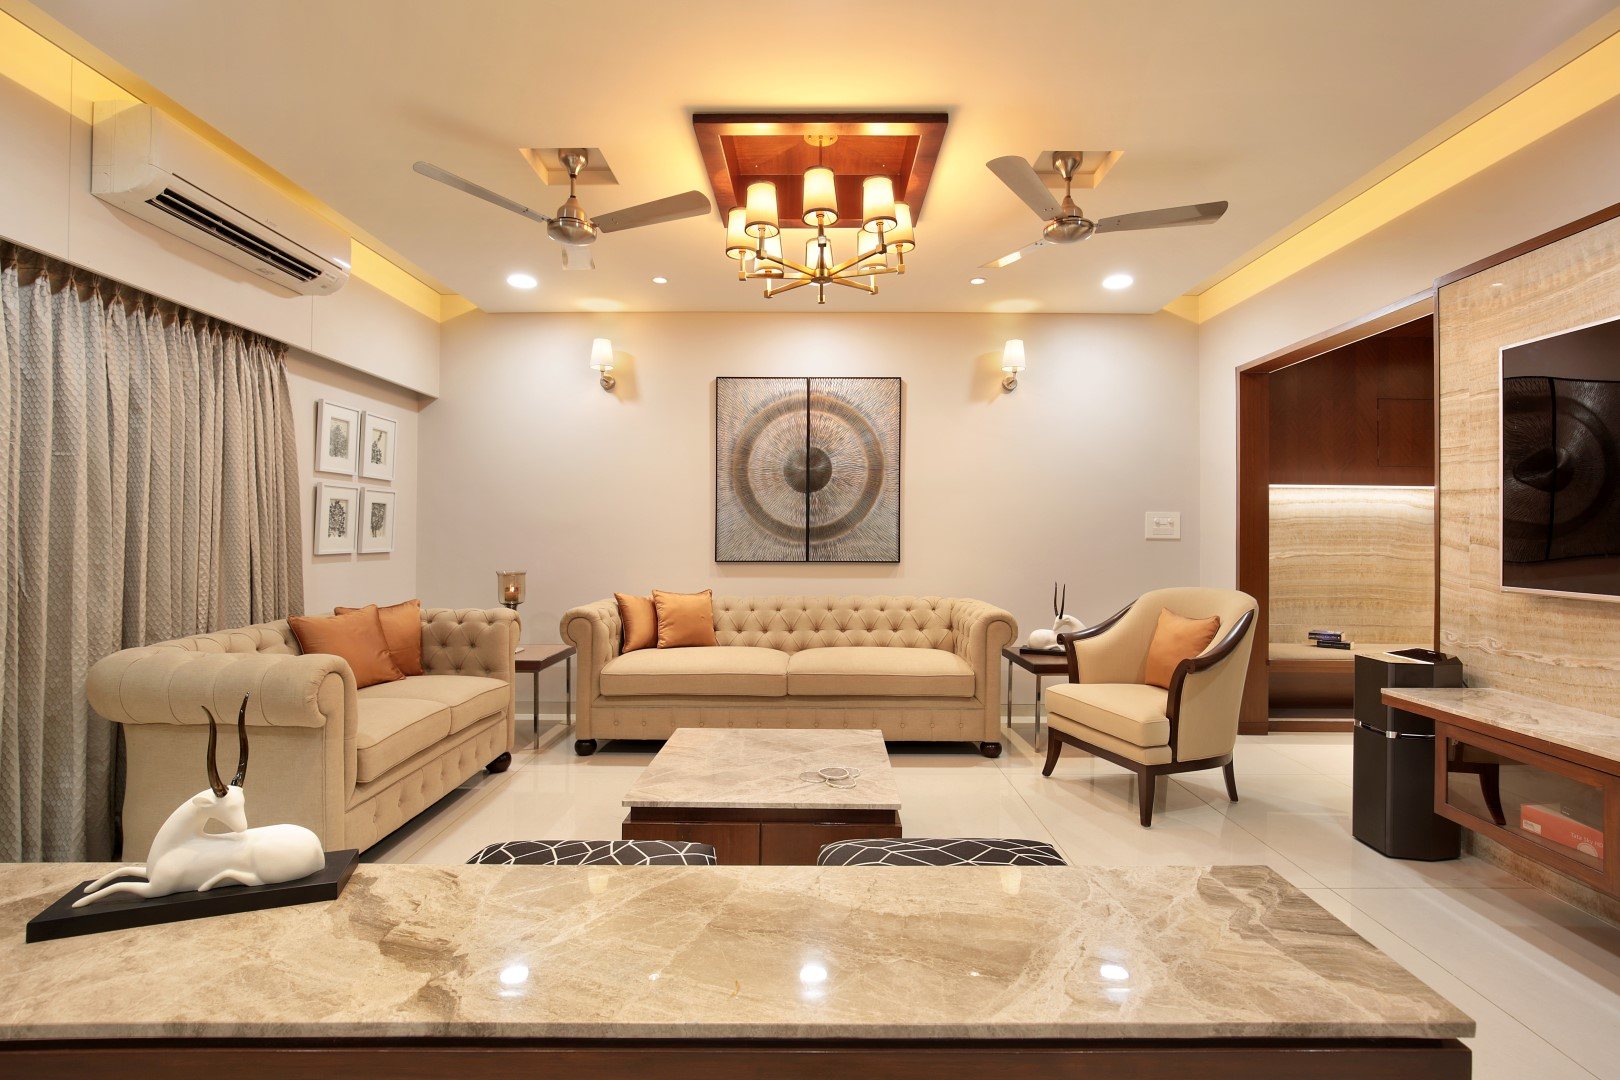 3 bhk flat interiors the oak woods vadodara studio7 for Interior designs for flats